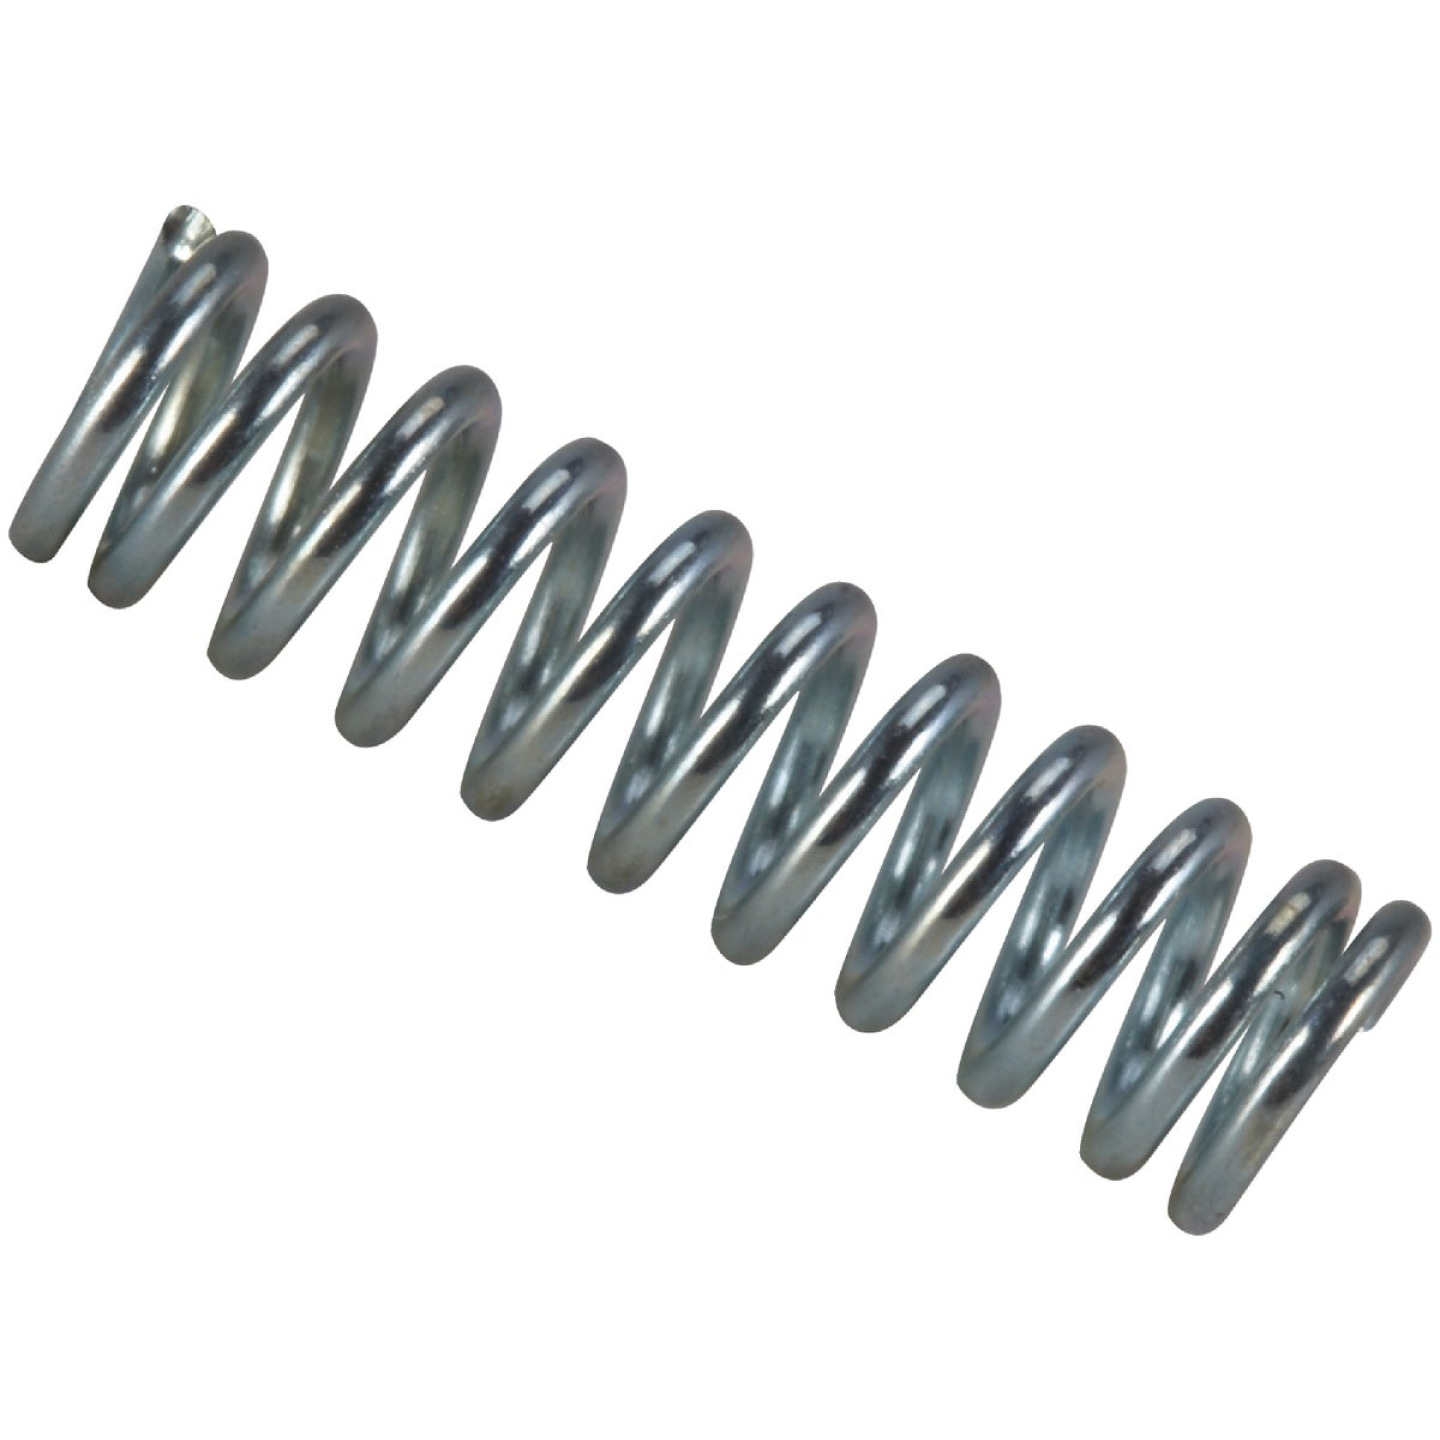 Century Spring 2 In. x 7/16 In. Compression Spring (2 Count) Image 1